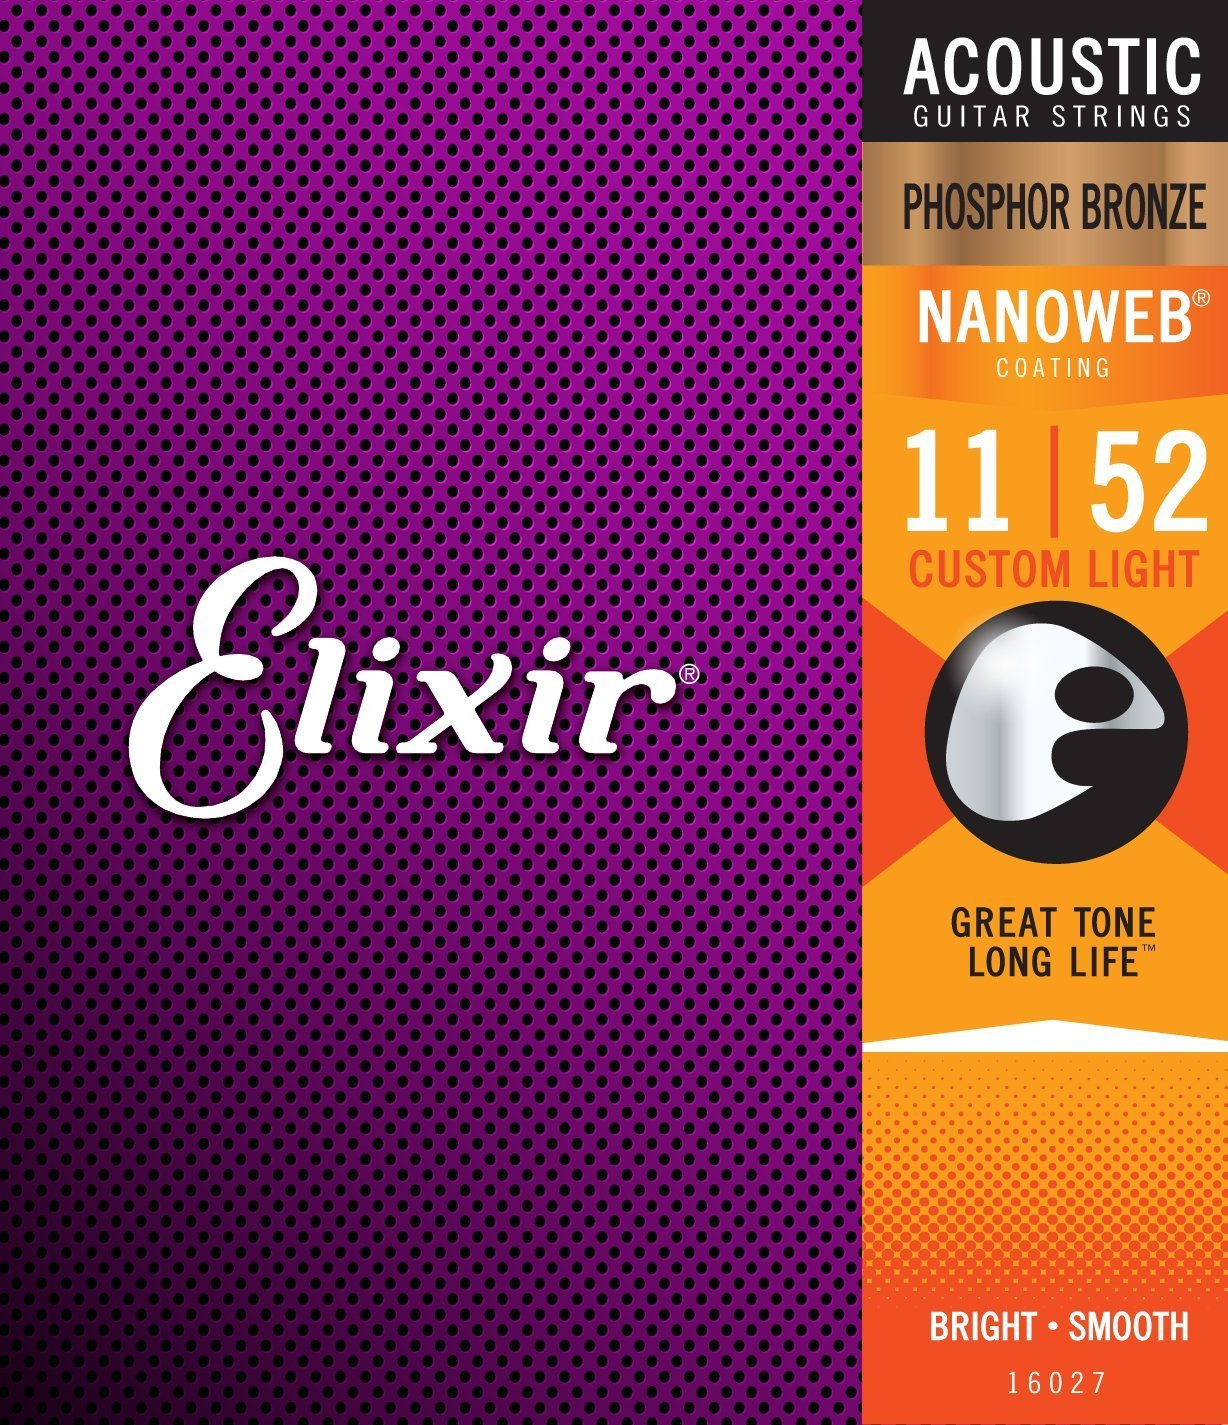 Elixir Phosphor Bronze Nanoweb Acoustic, Custom Light